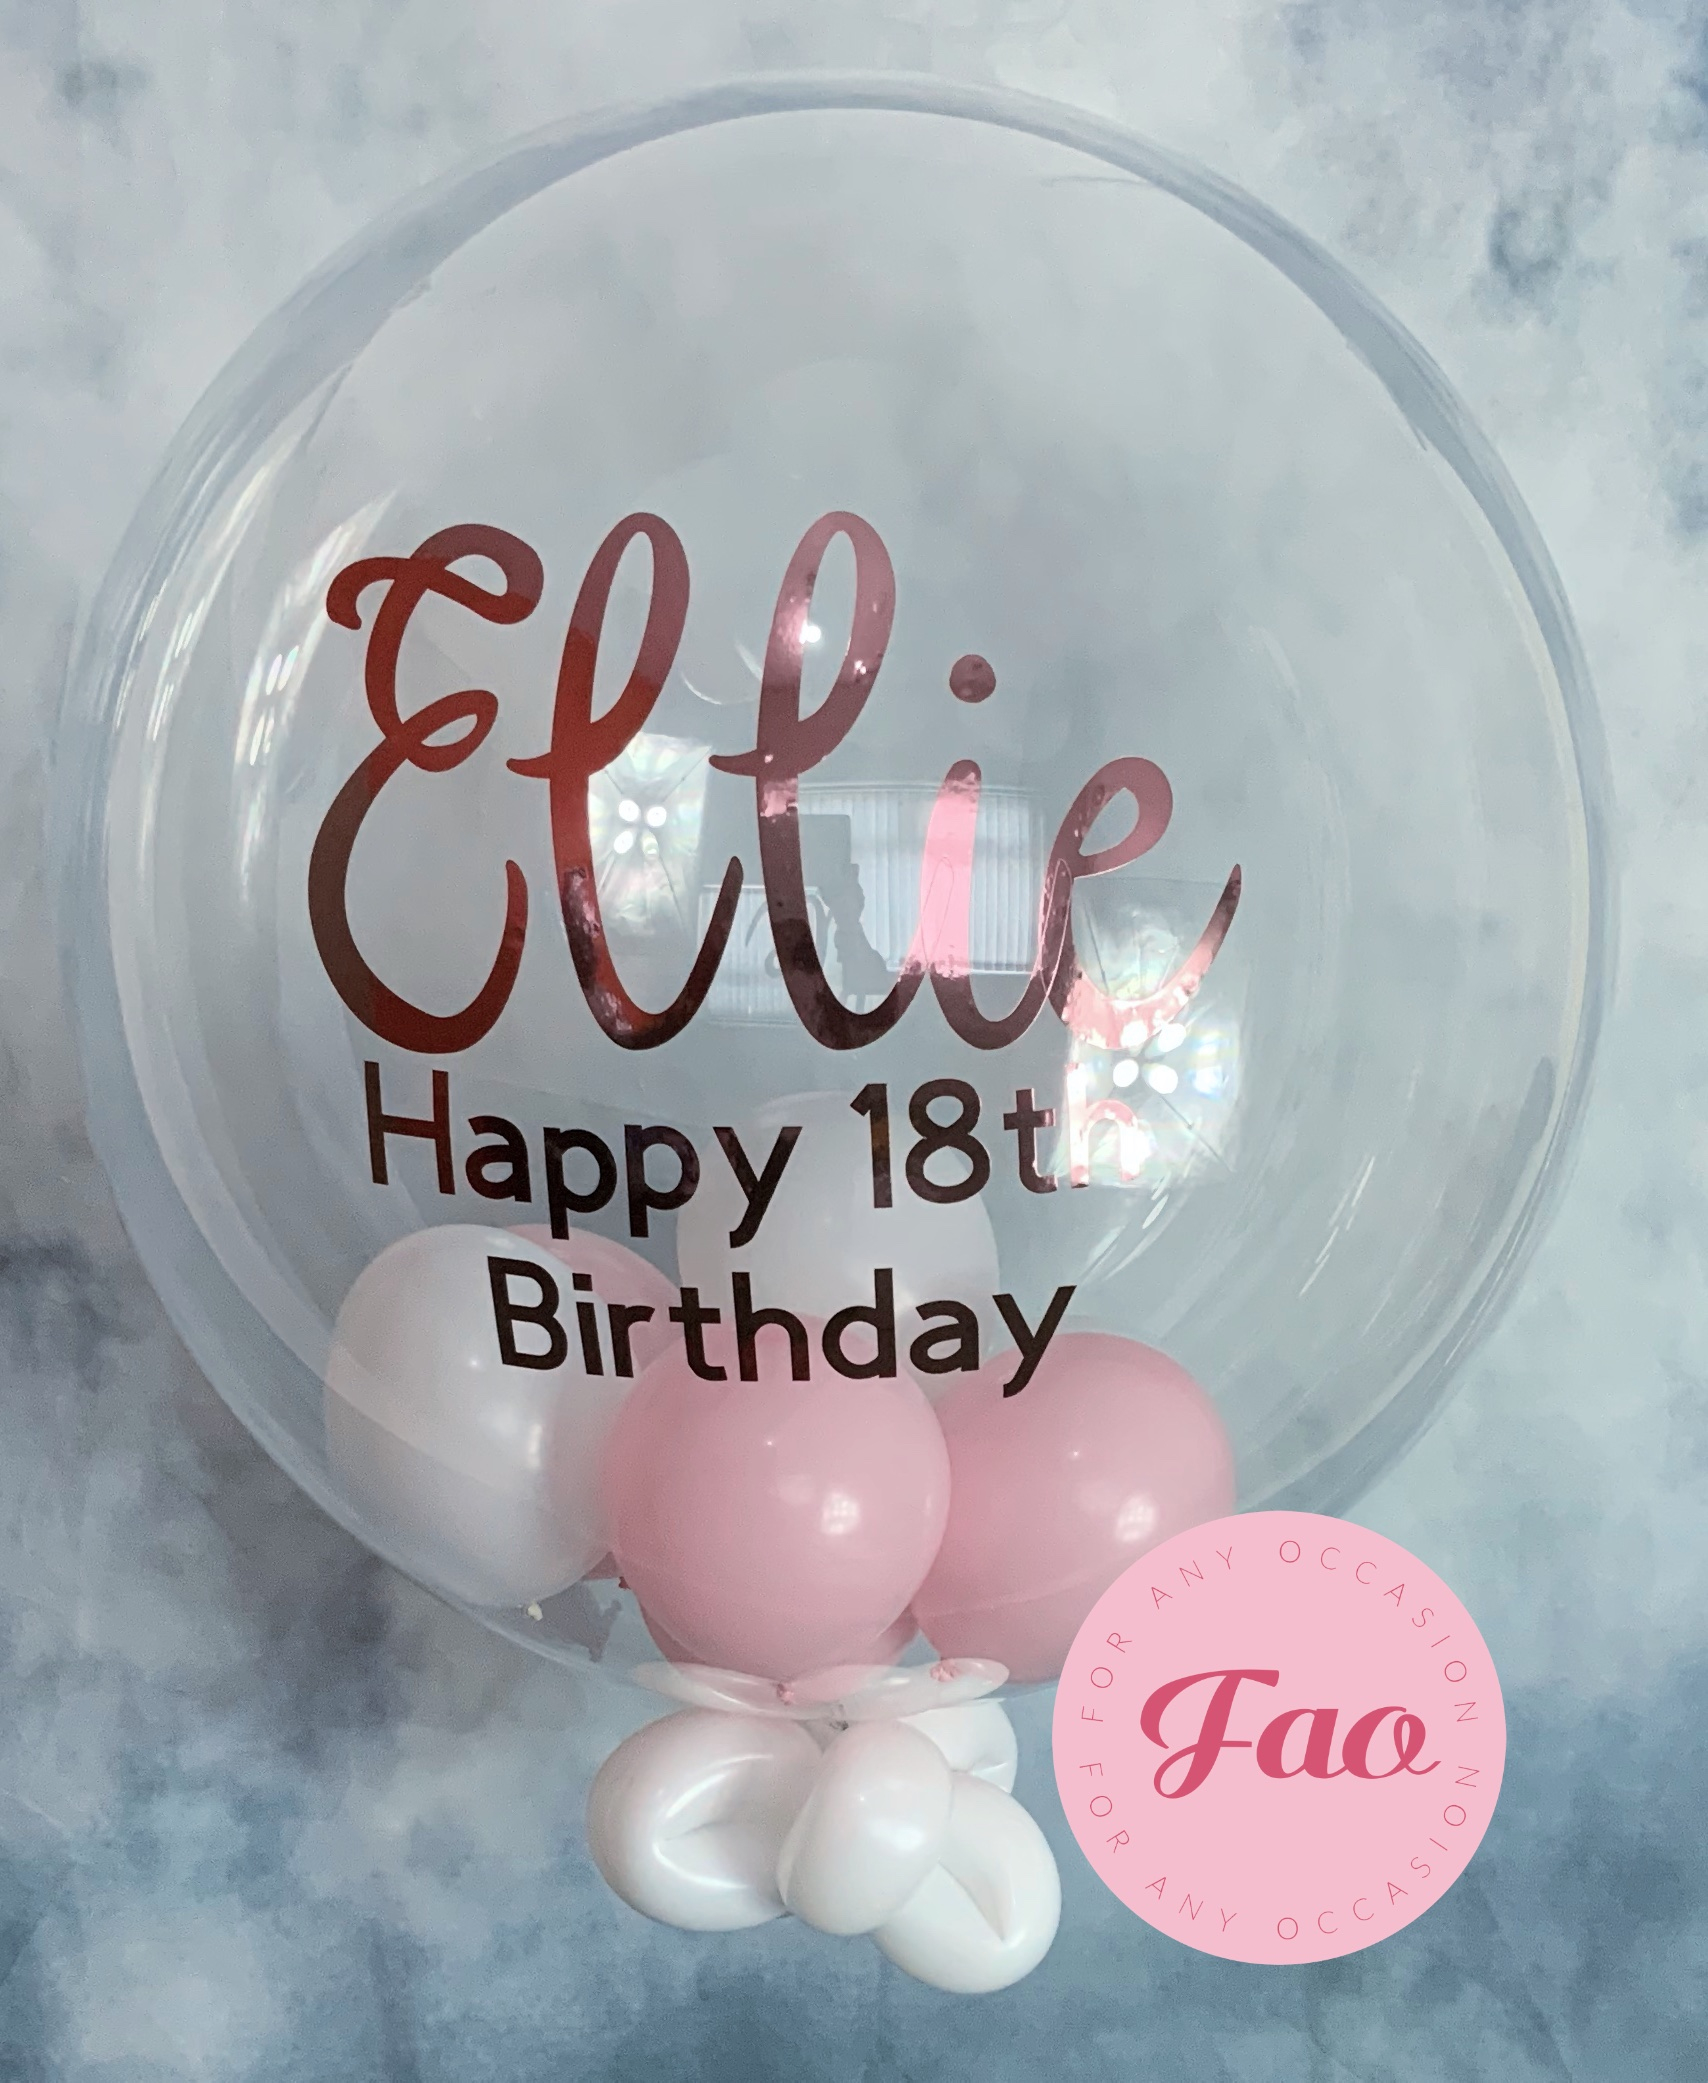 Bubble Balloon | For Any Occasion The Paty Starts Now à Bubble Occasion